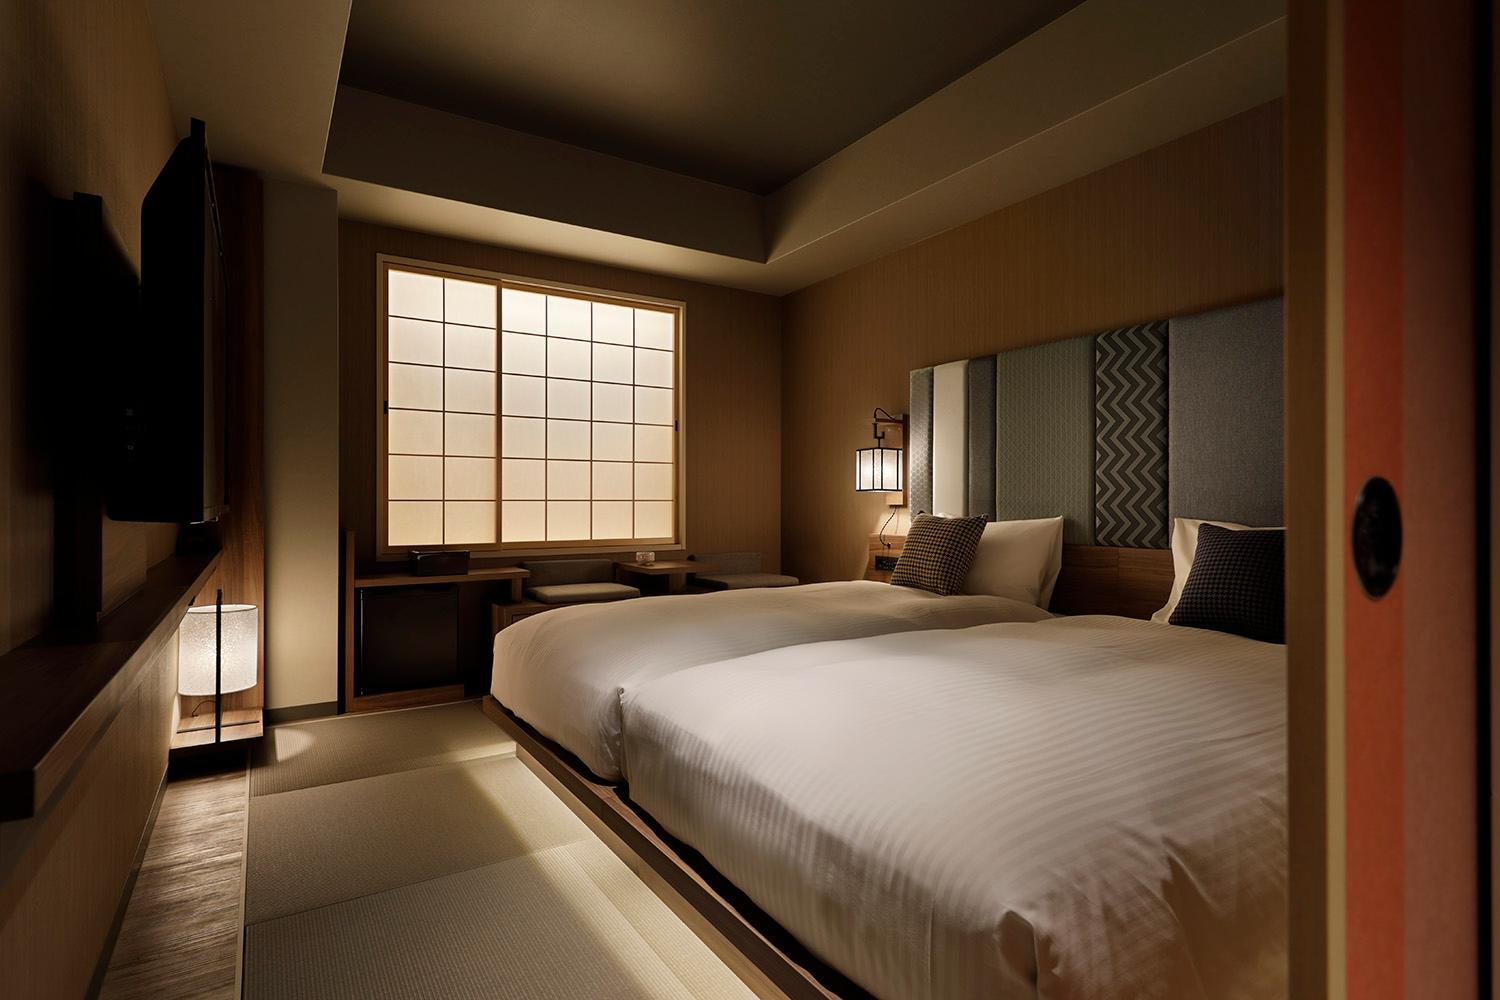 日式現代客房(兩床) - 禁菸 (Japanese Modern Room with Twin Bed - Non-Smoking)